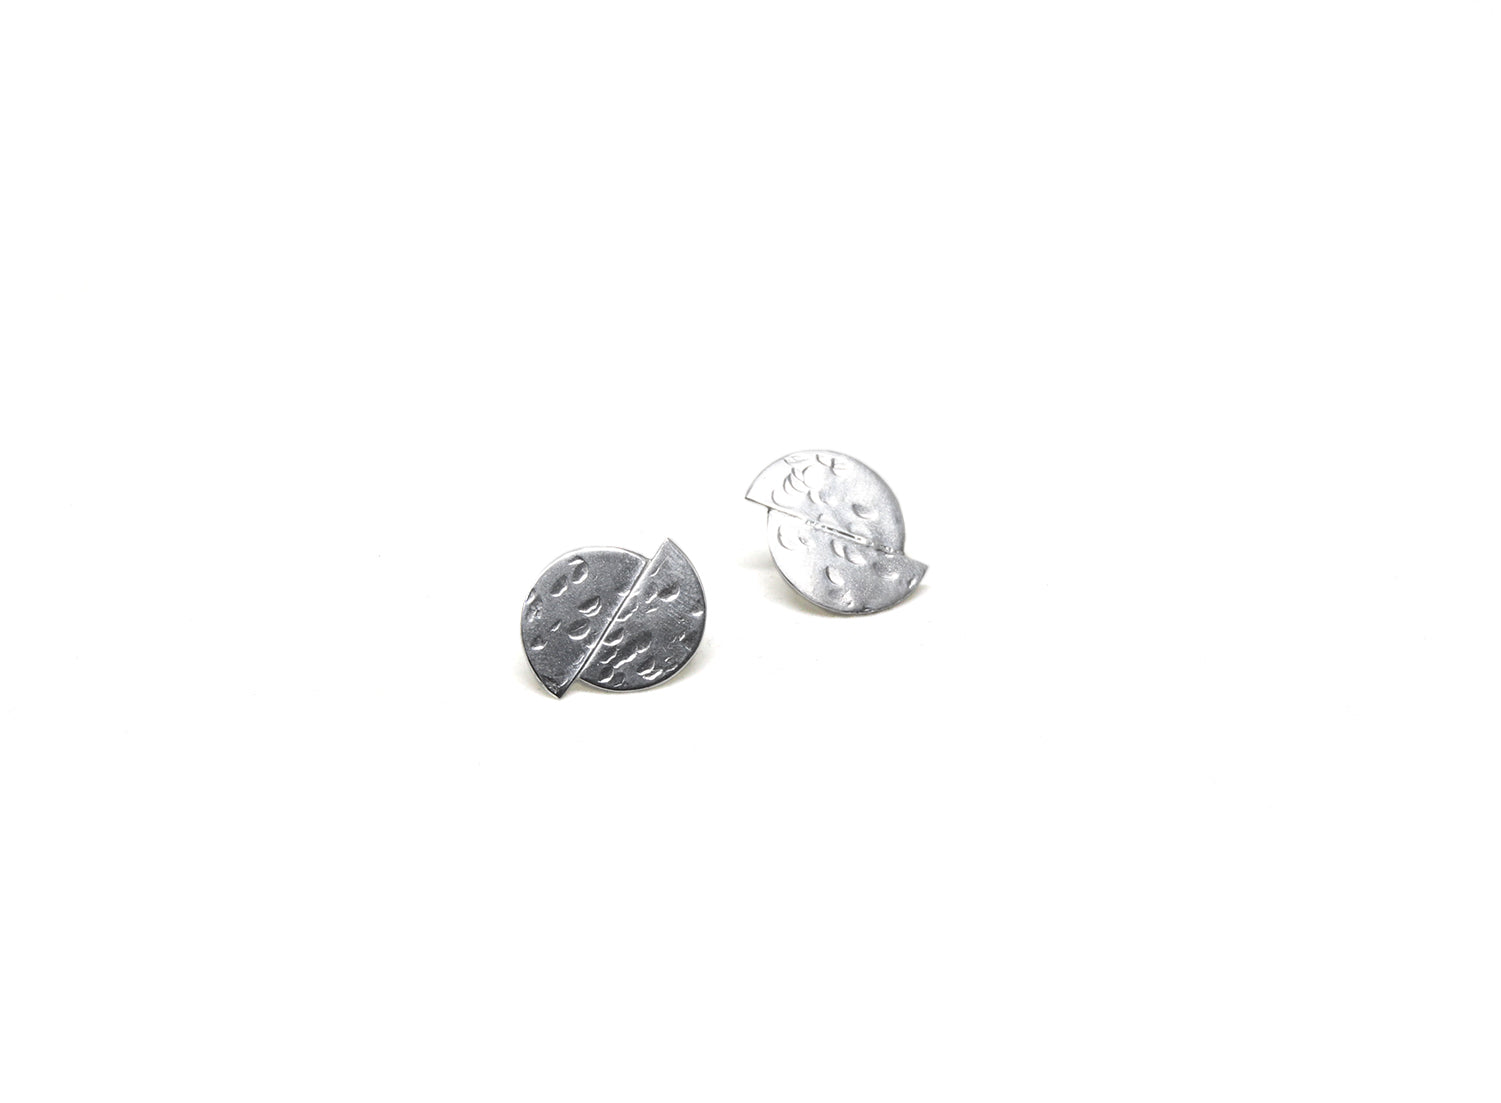 llayers jewelry lacus earrings - stud earrings in moon textured silver - boucles d'oreilles disques décalés texture lunaire en argent